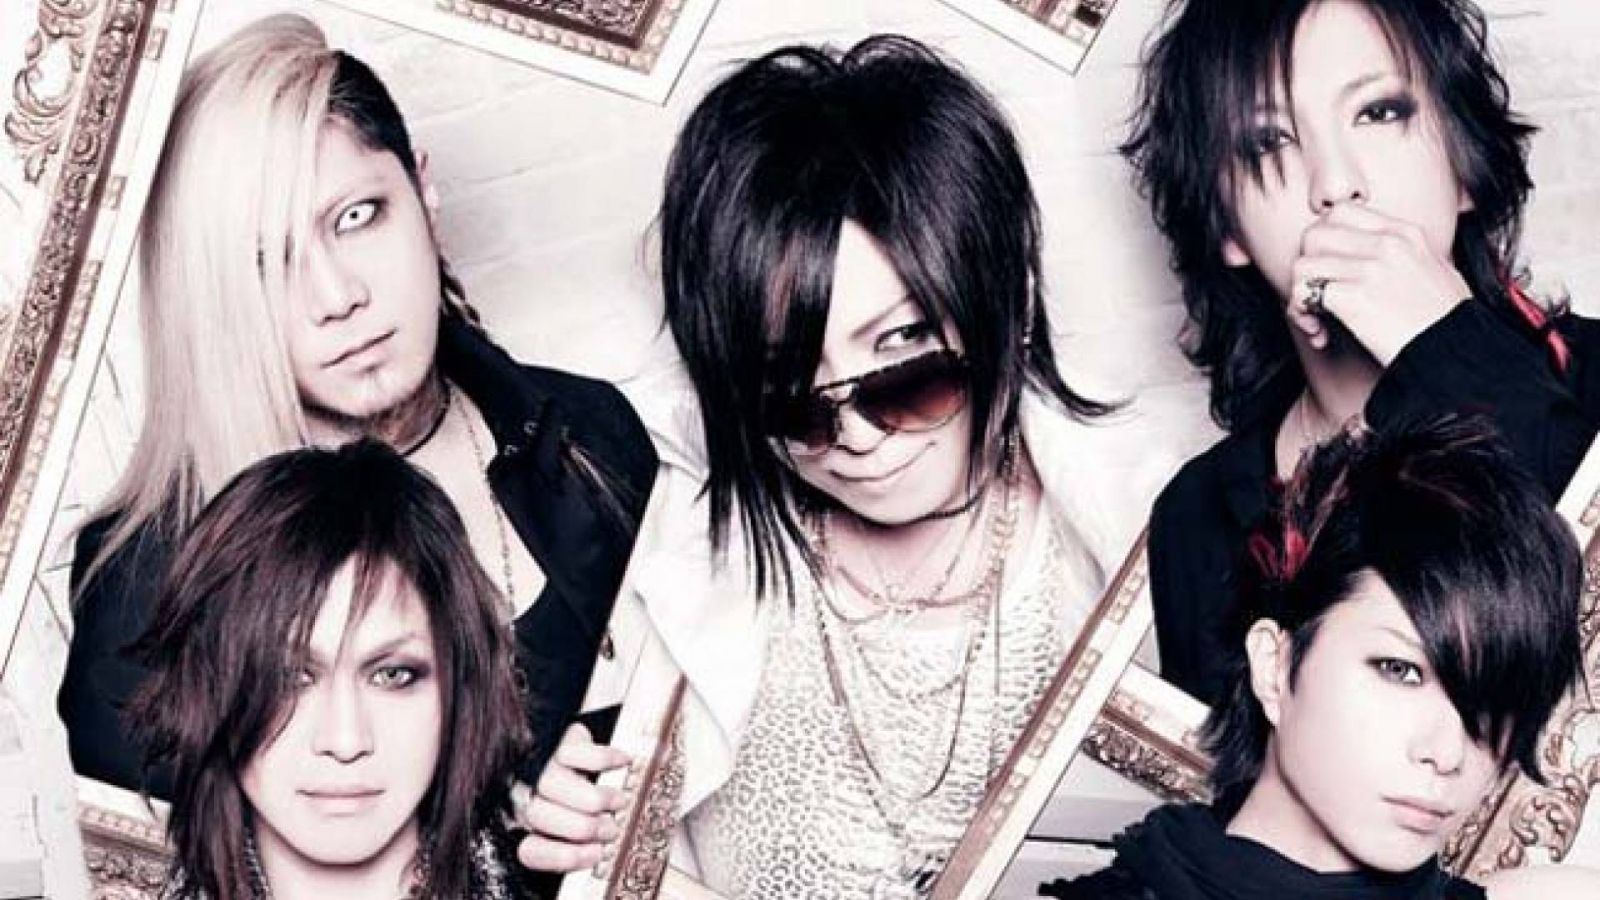 THE MICRO HEAD 4N'S © THE MICRO HEAD 4N'S All Rights Reserved